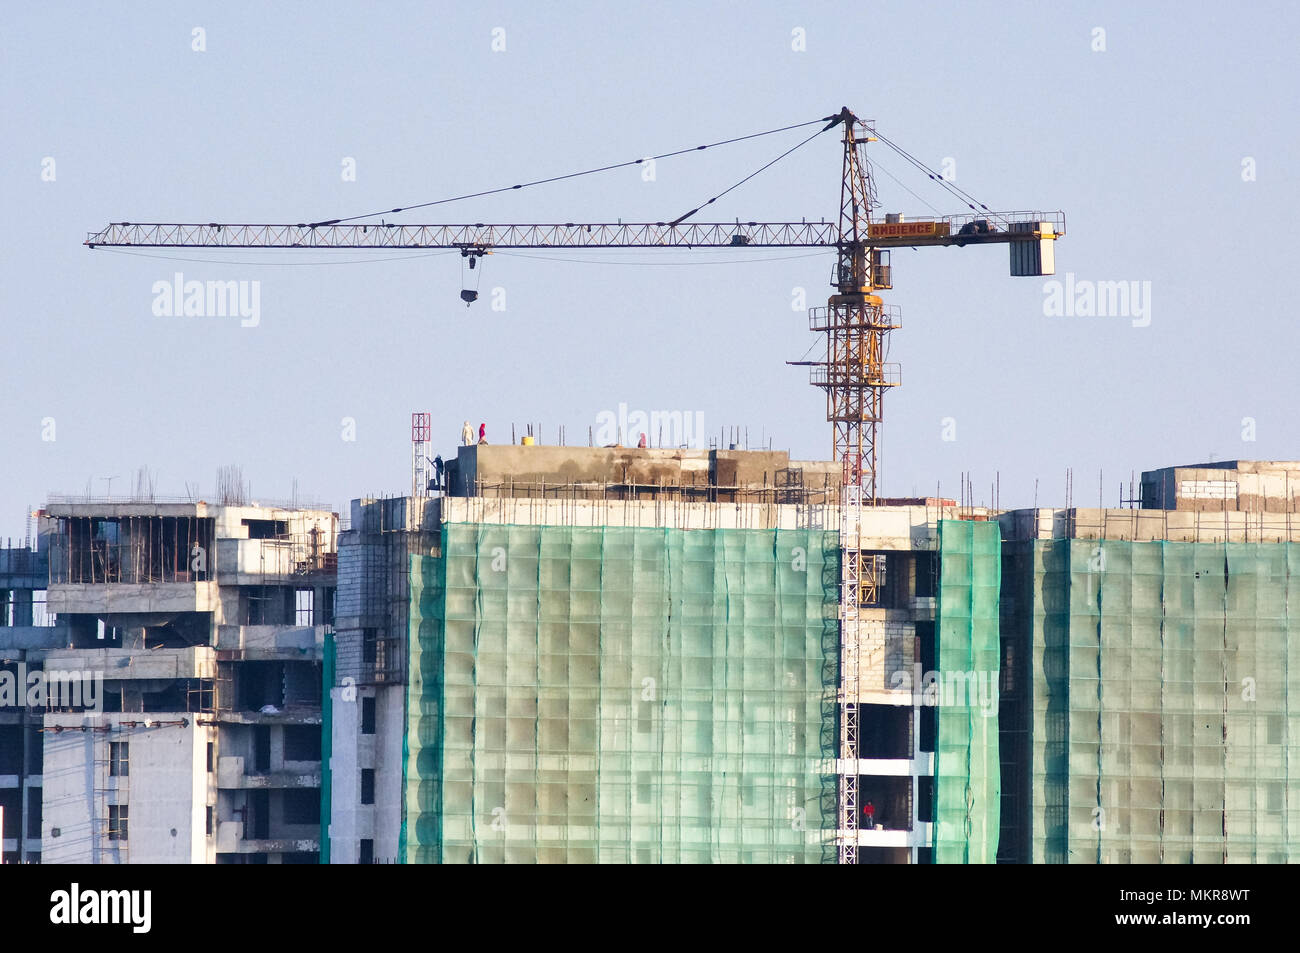 Under construction building with the concrete structure exposed and covered with green safety nets. The construction crane on top is an essential for building these high rise sky scrapers in delhi, jaipur, noida, gurgaon , lucknow, bangalore, hyderabad and other indian cities - Stock Image